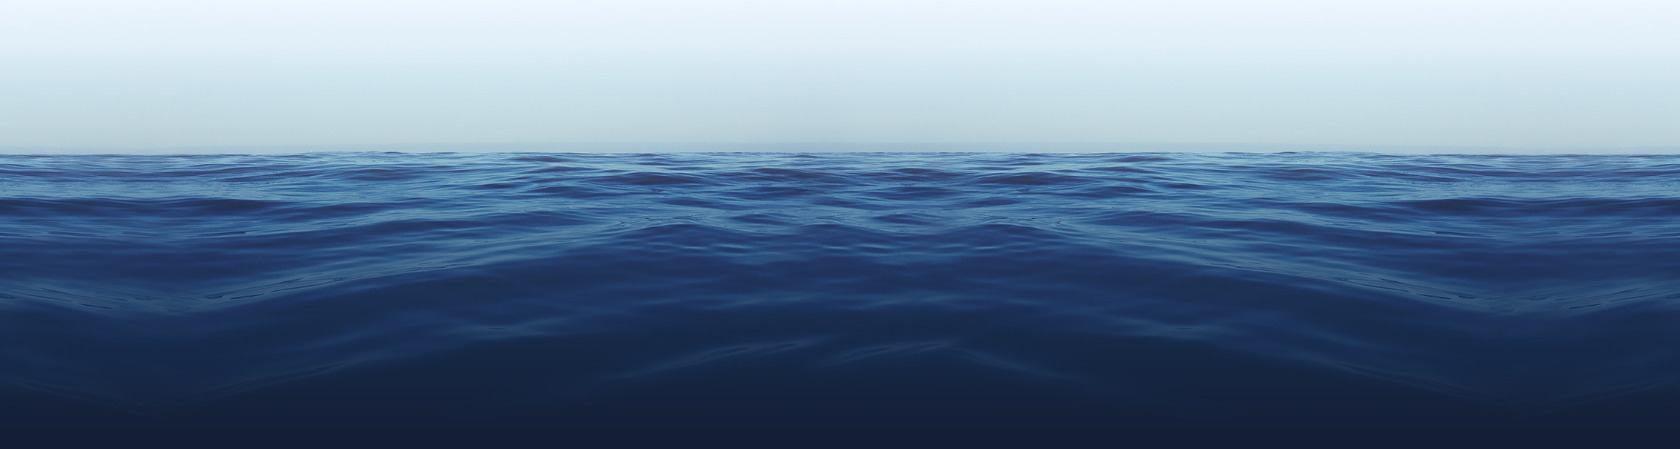 calm deep blue water